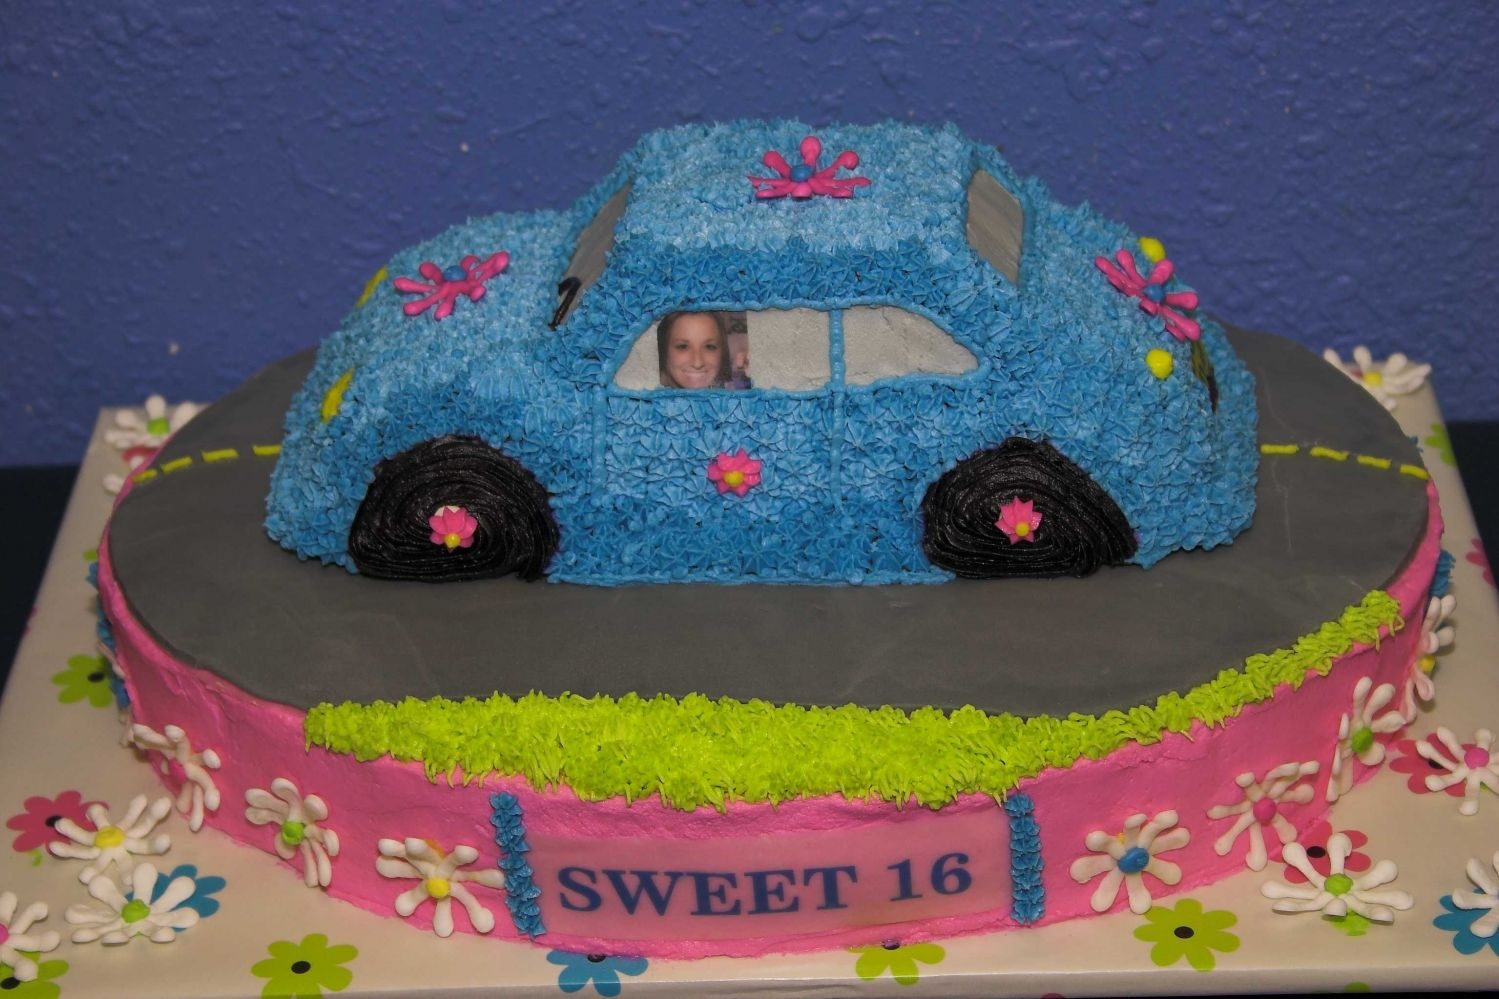 Sweet 16 Volkswagon Cake (Front View)  This is my daughter's sweet 16 cake that my mother-in-law, daughter-in-law, and even my husband helped me out on. It's a fudge...